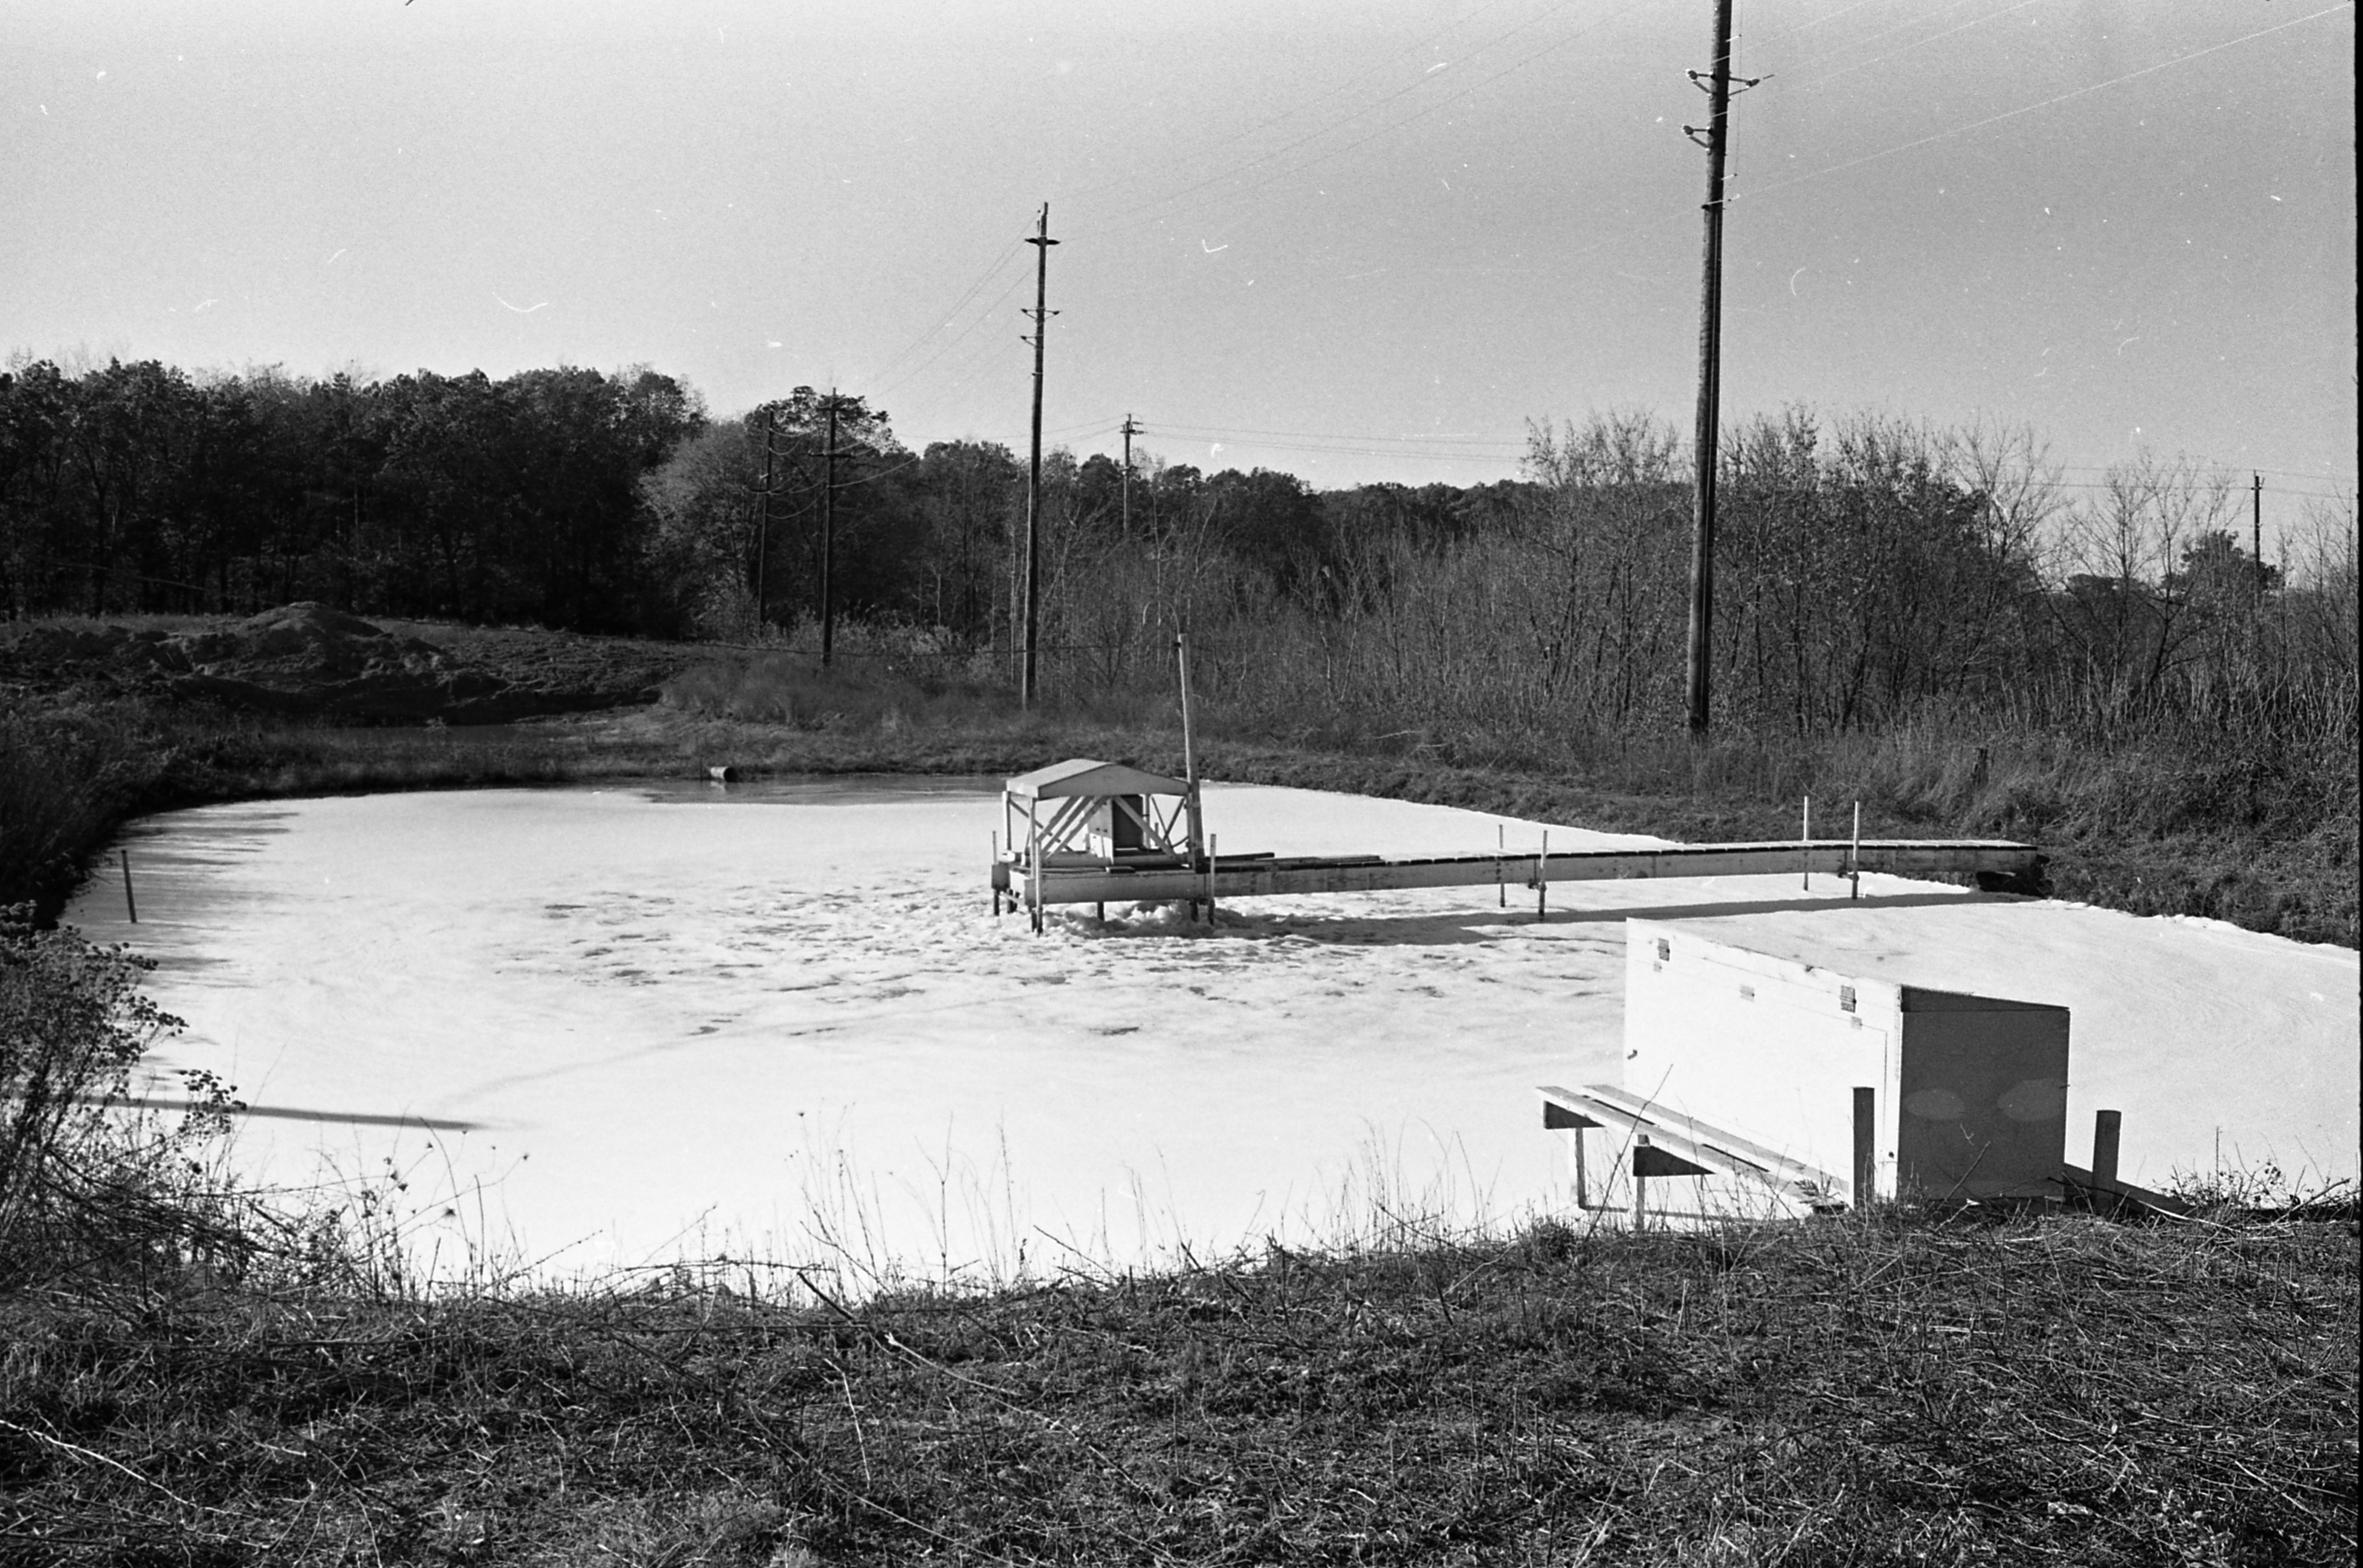 Lagoon System Gets Low Rating, November 1969 image